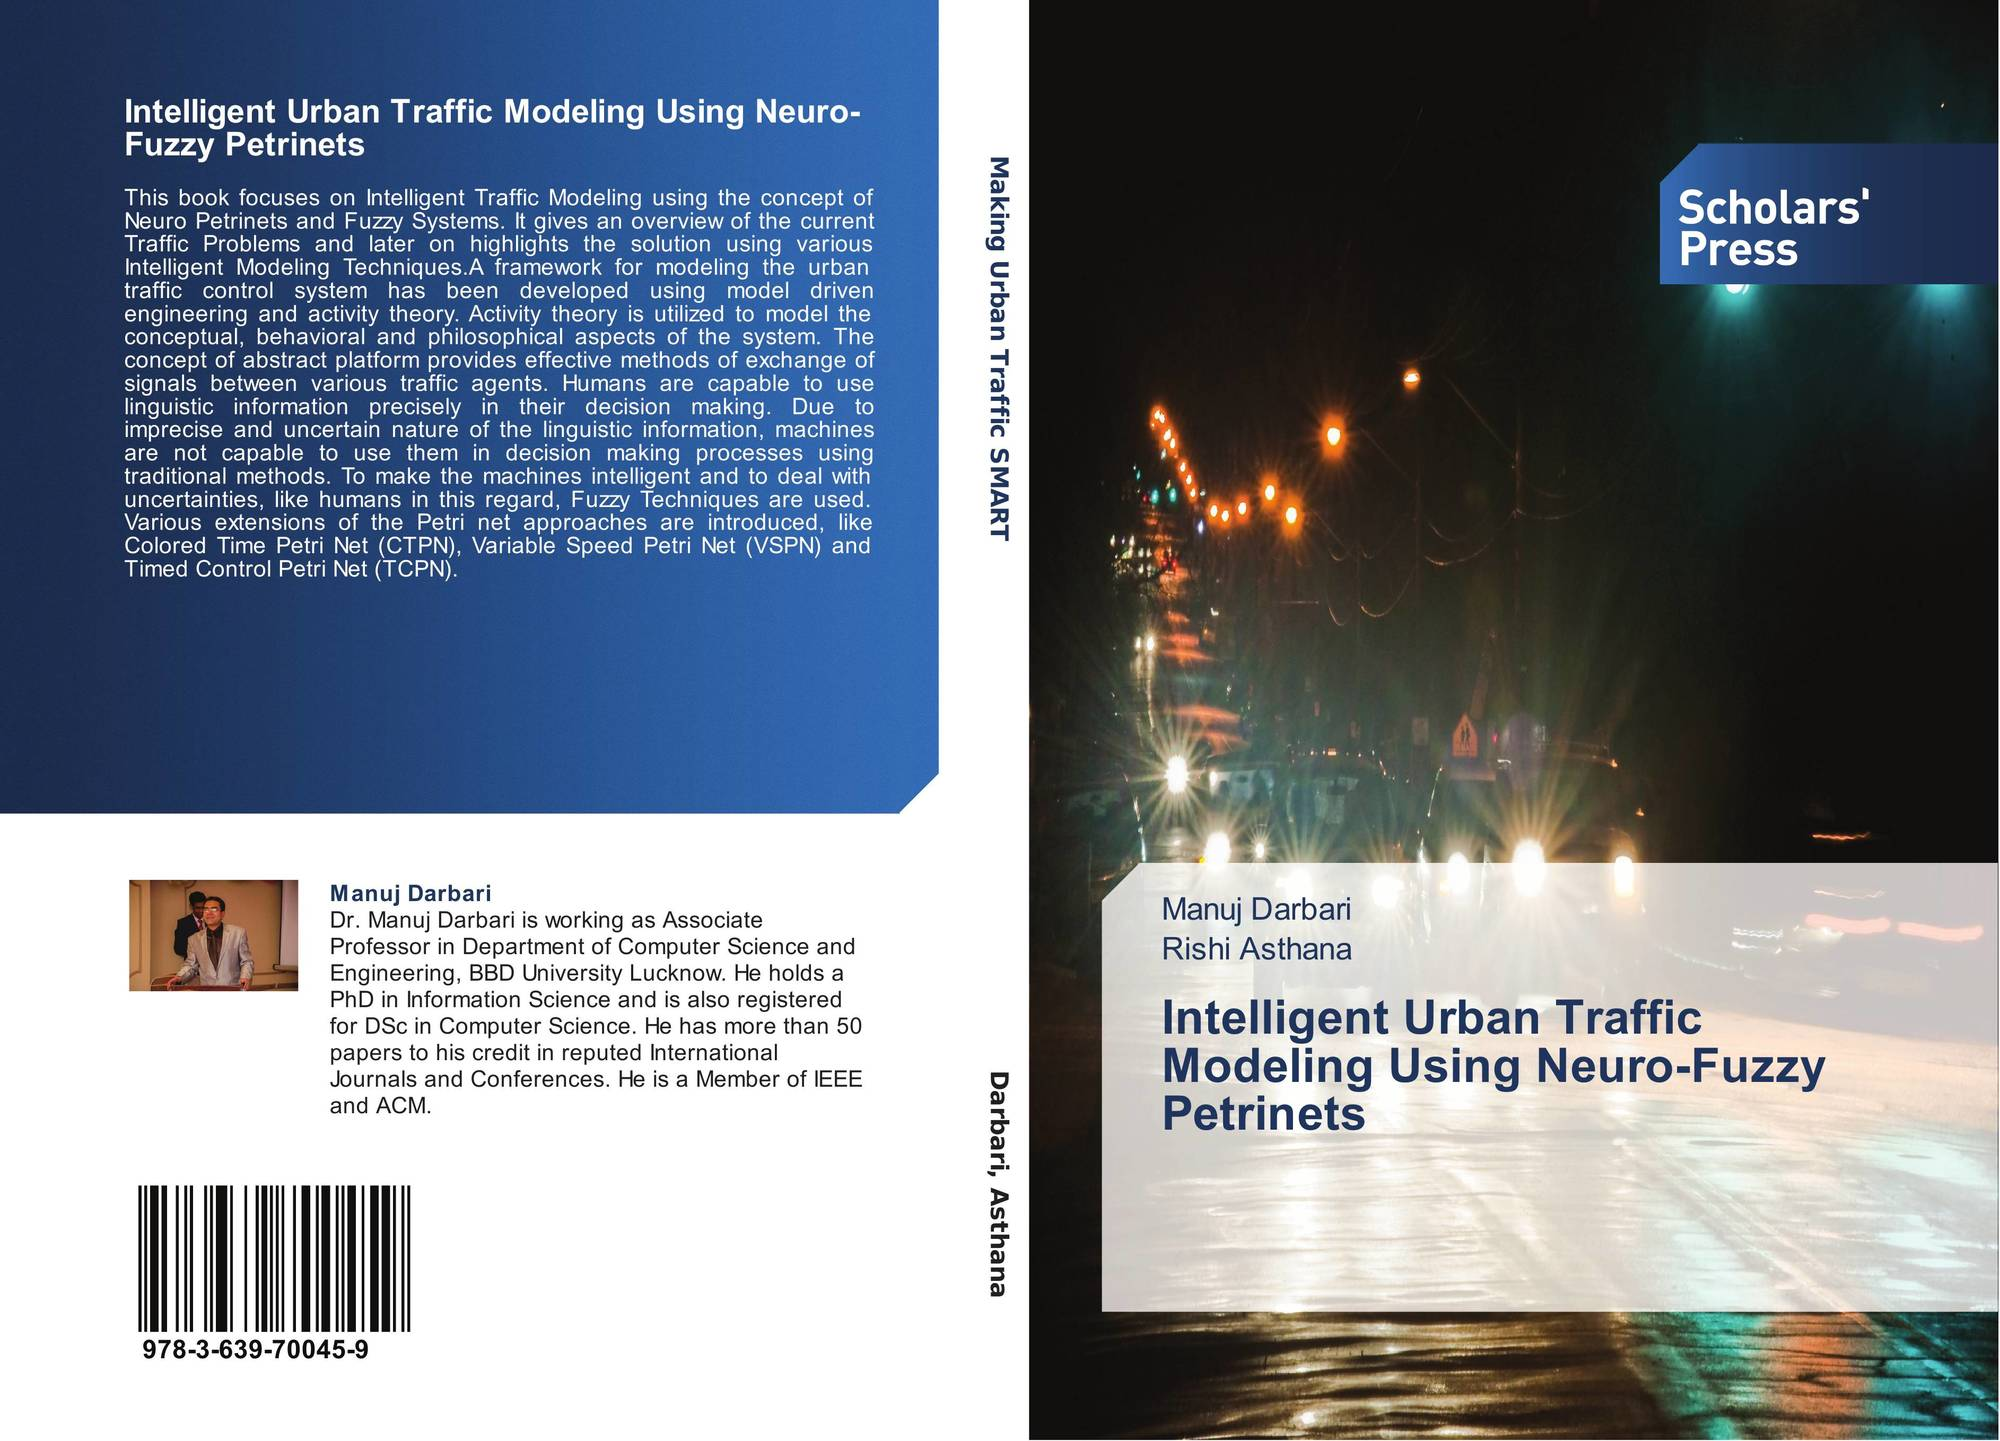 Intelligent Urban Traffic Modeling Using Neuro-Fuzzy